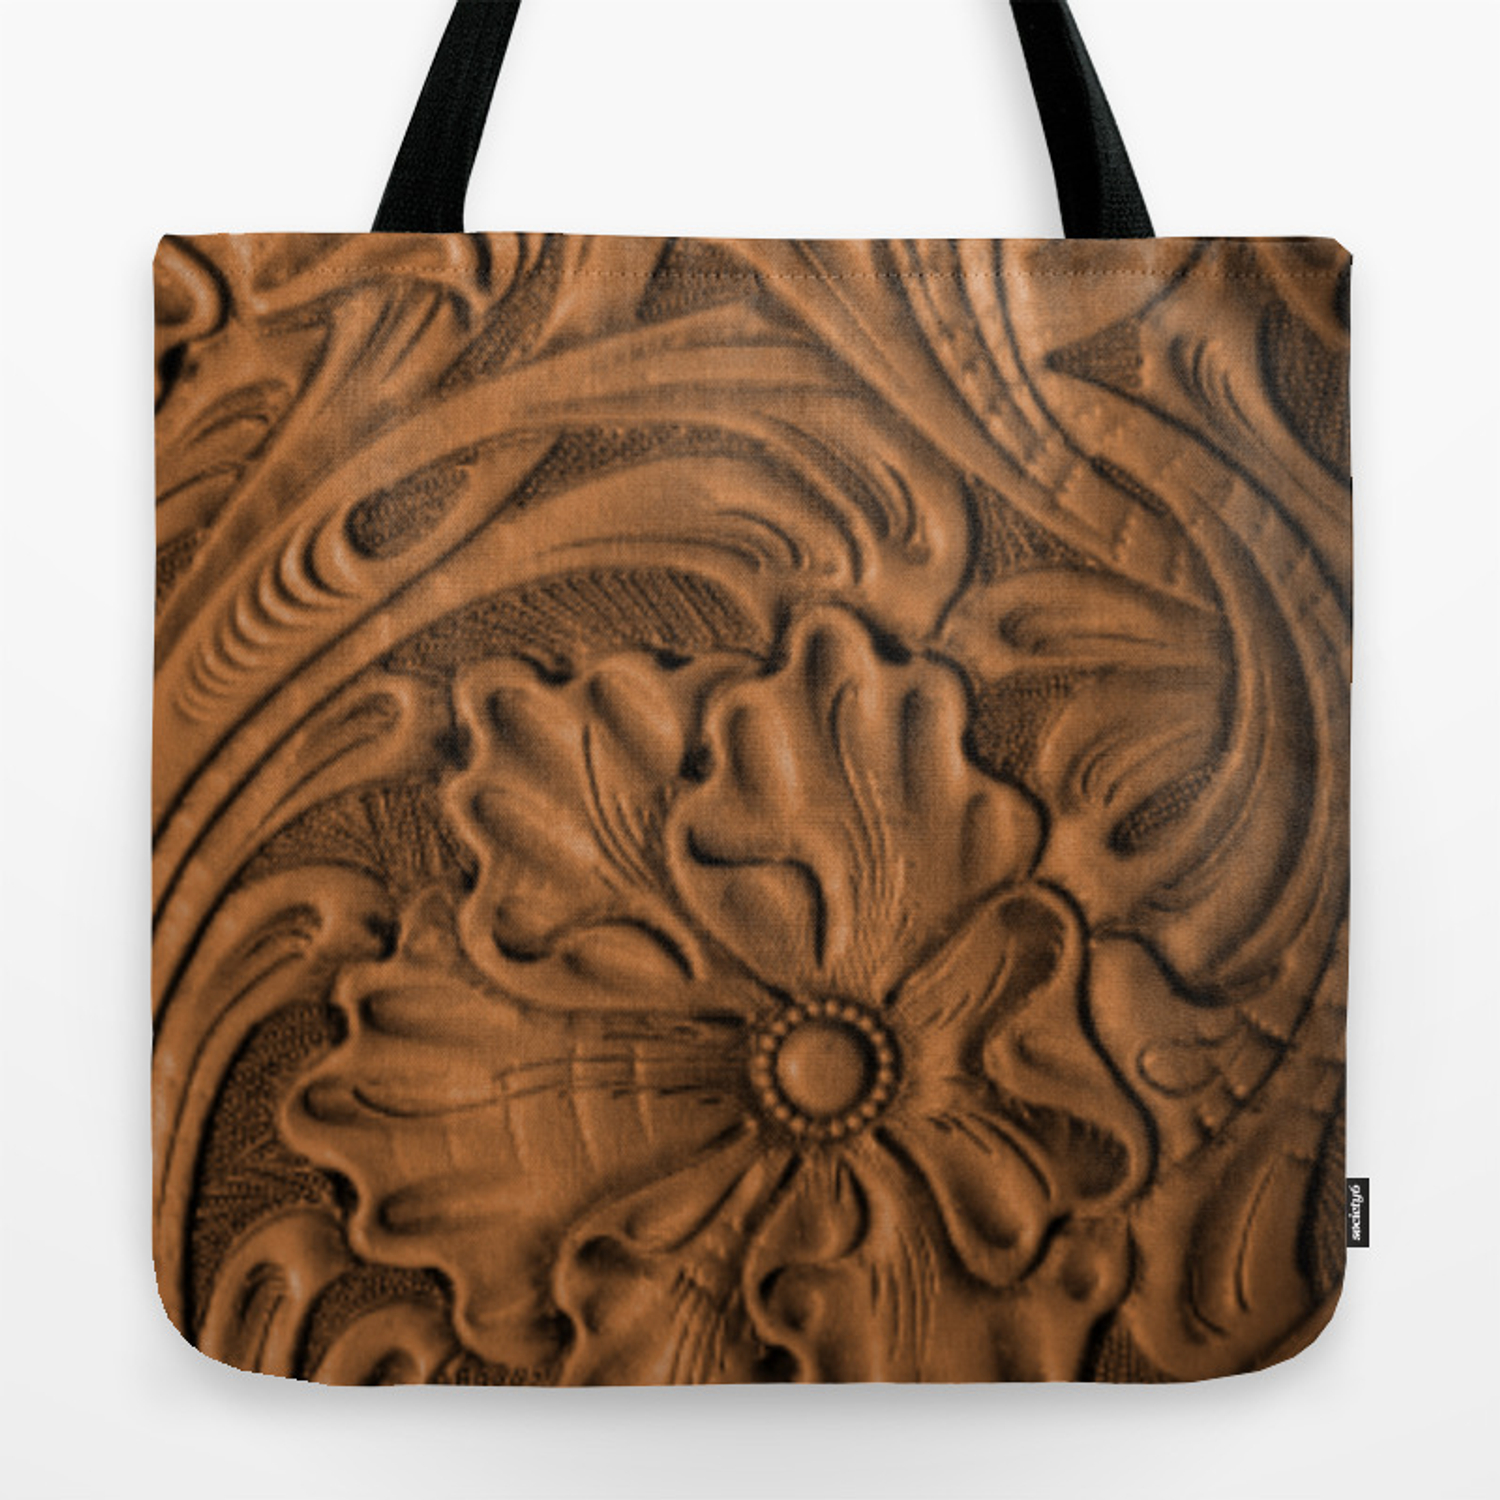 Golden Tanned Tooled Leather Tote Bag